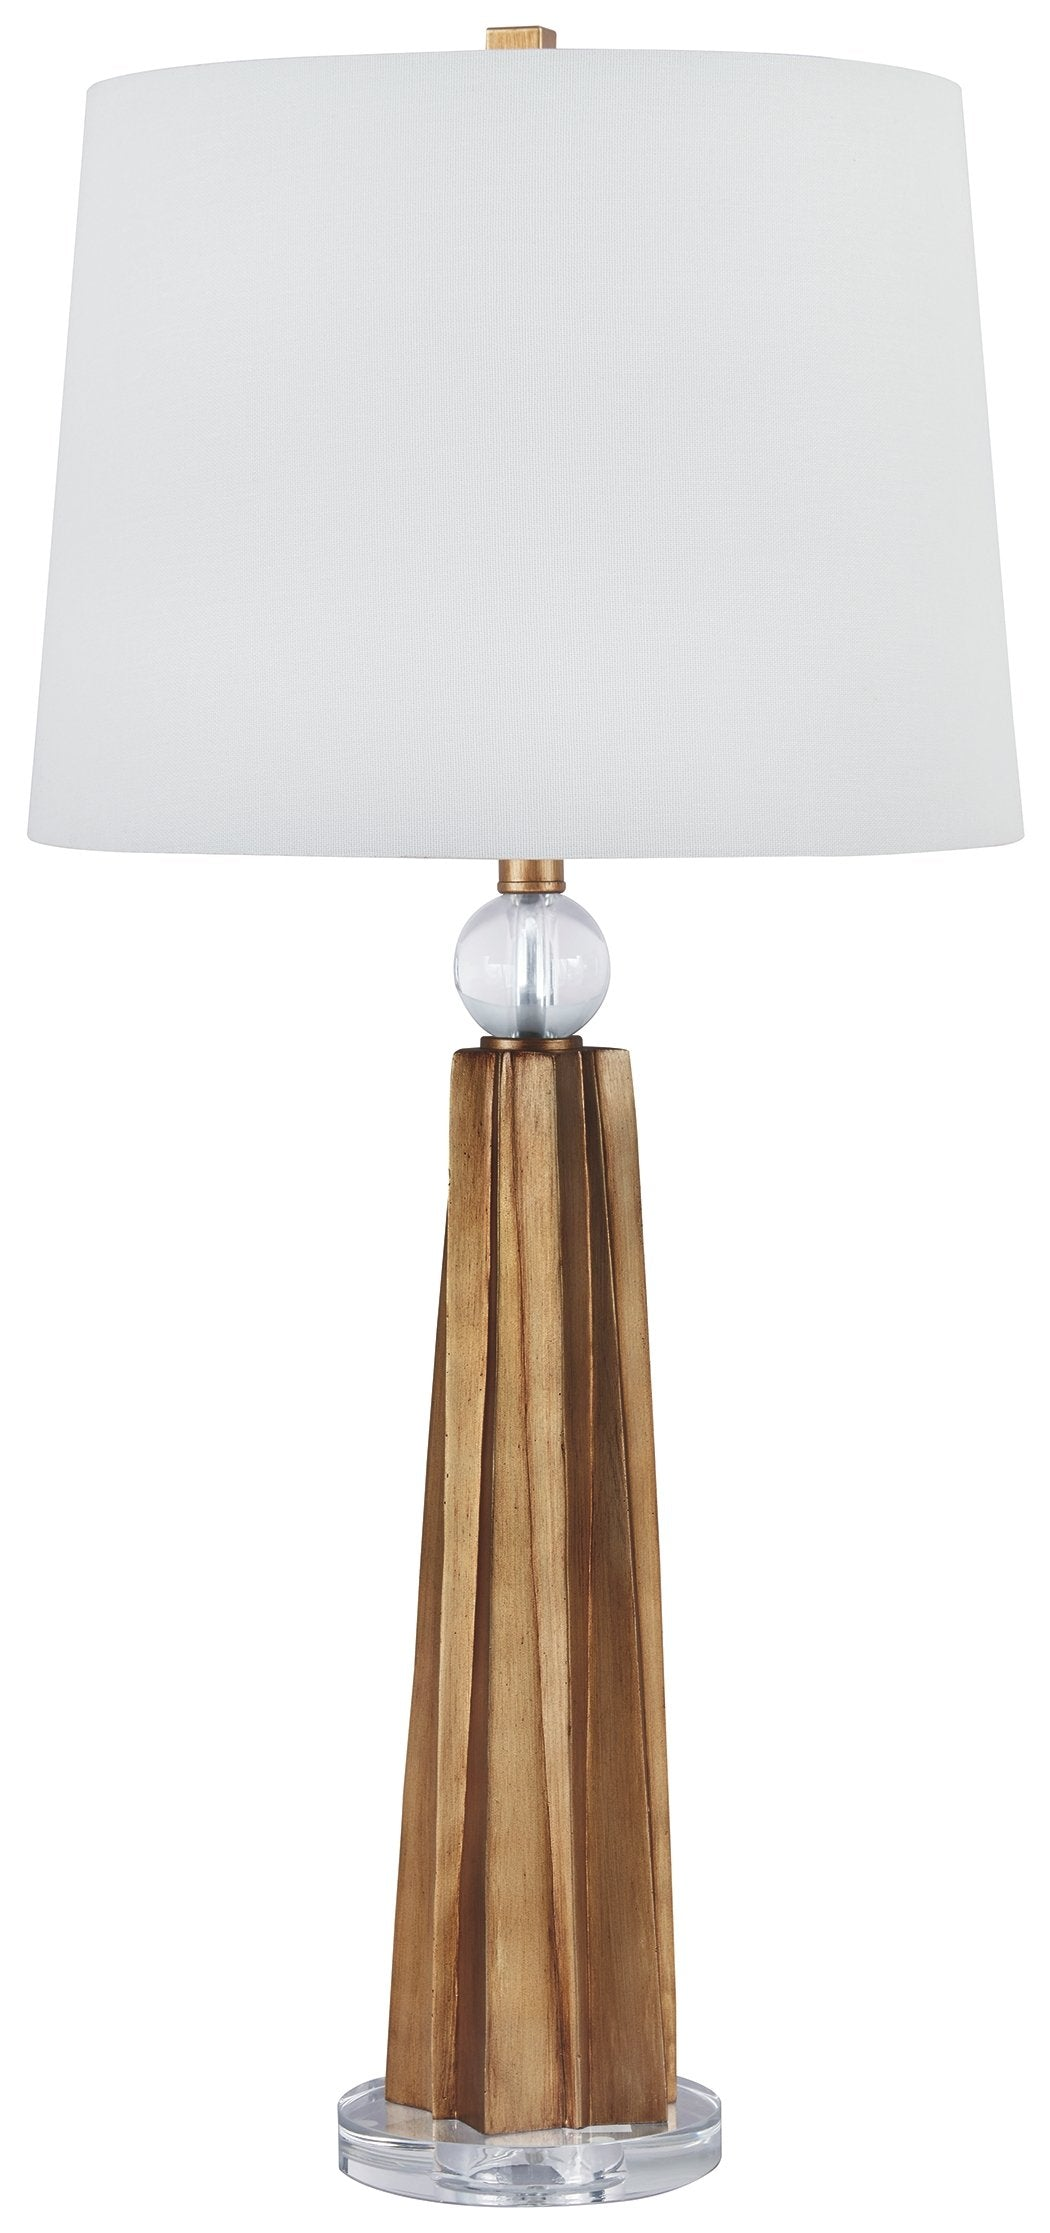 Engla Signature Design by Ashley Table Lamp Pair